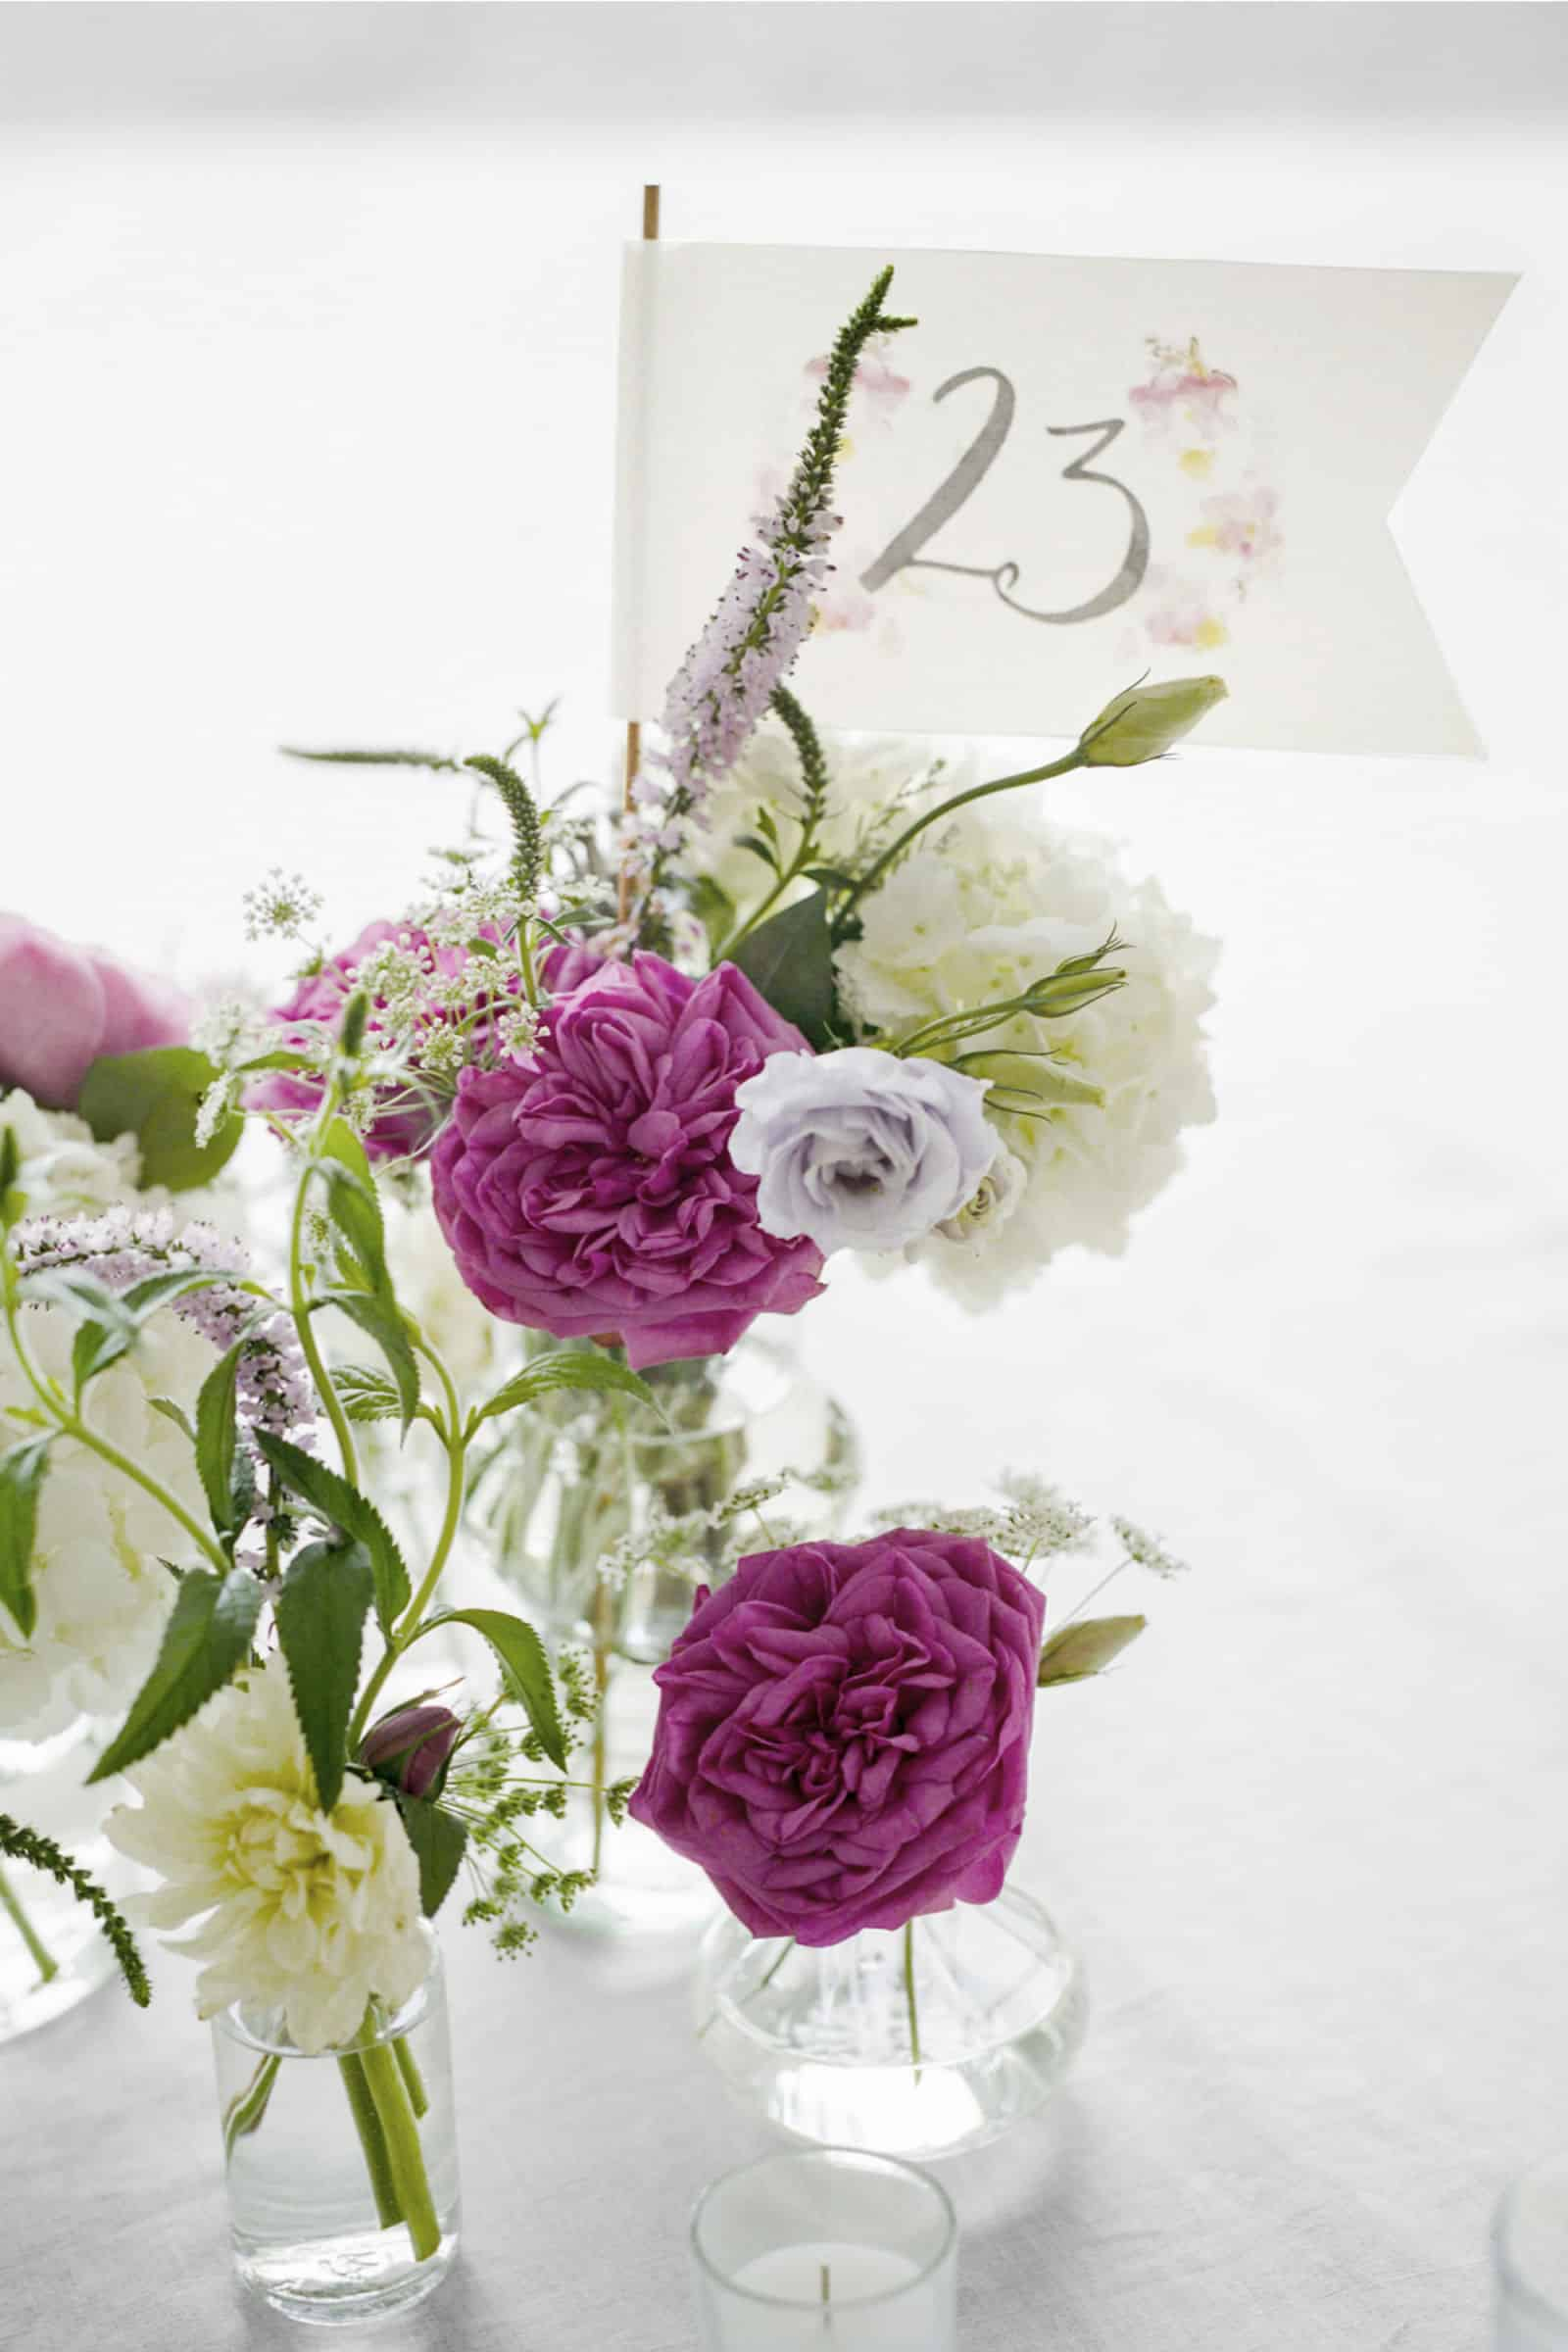 15 Wedding Centerpieces That You Can DIY!